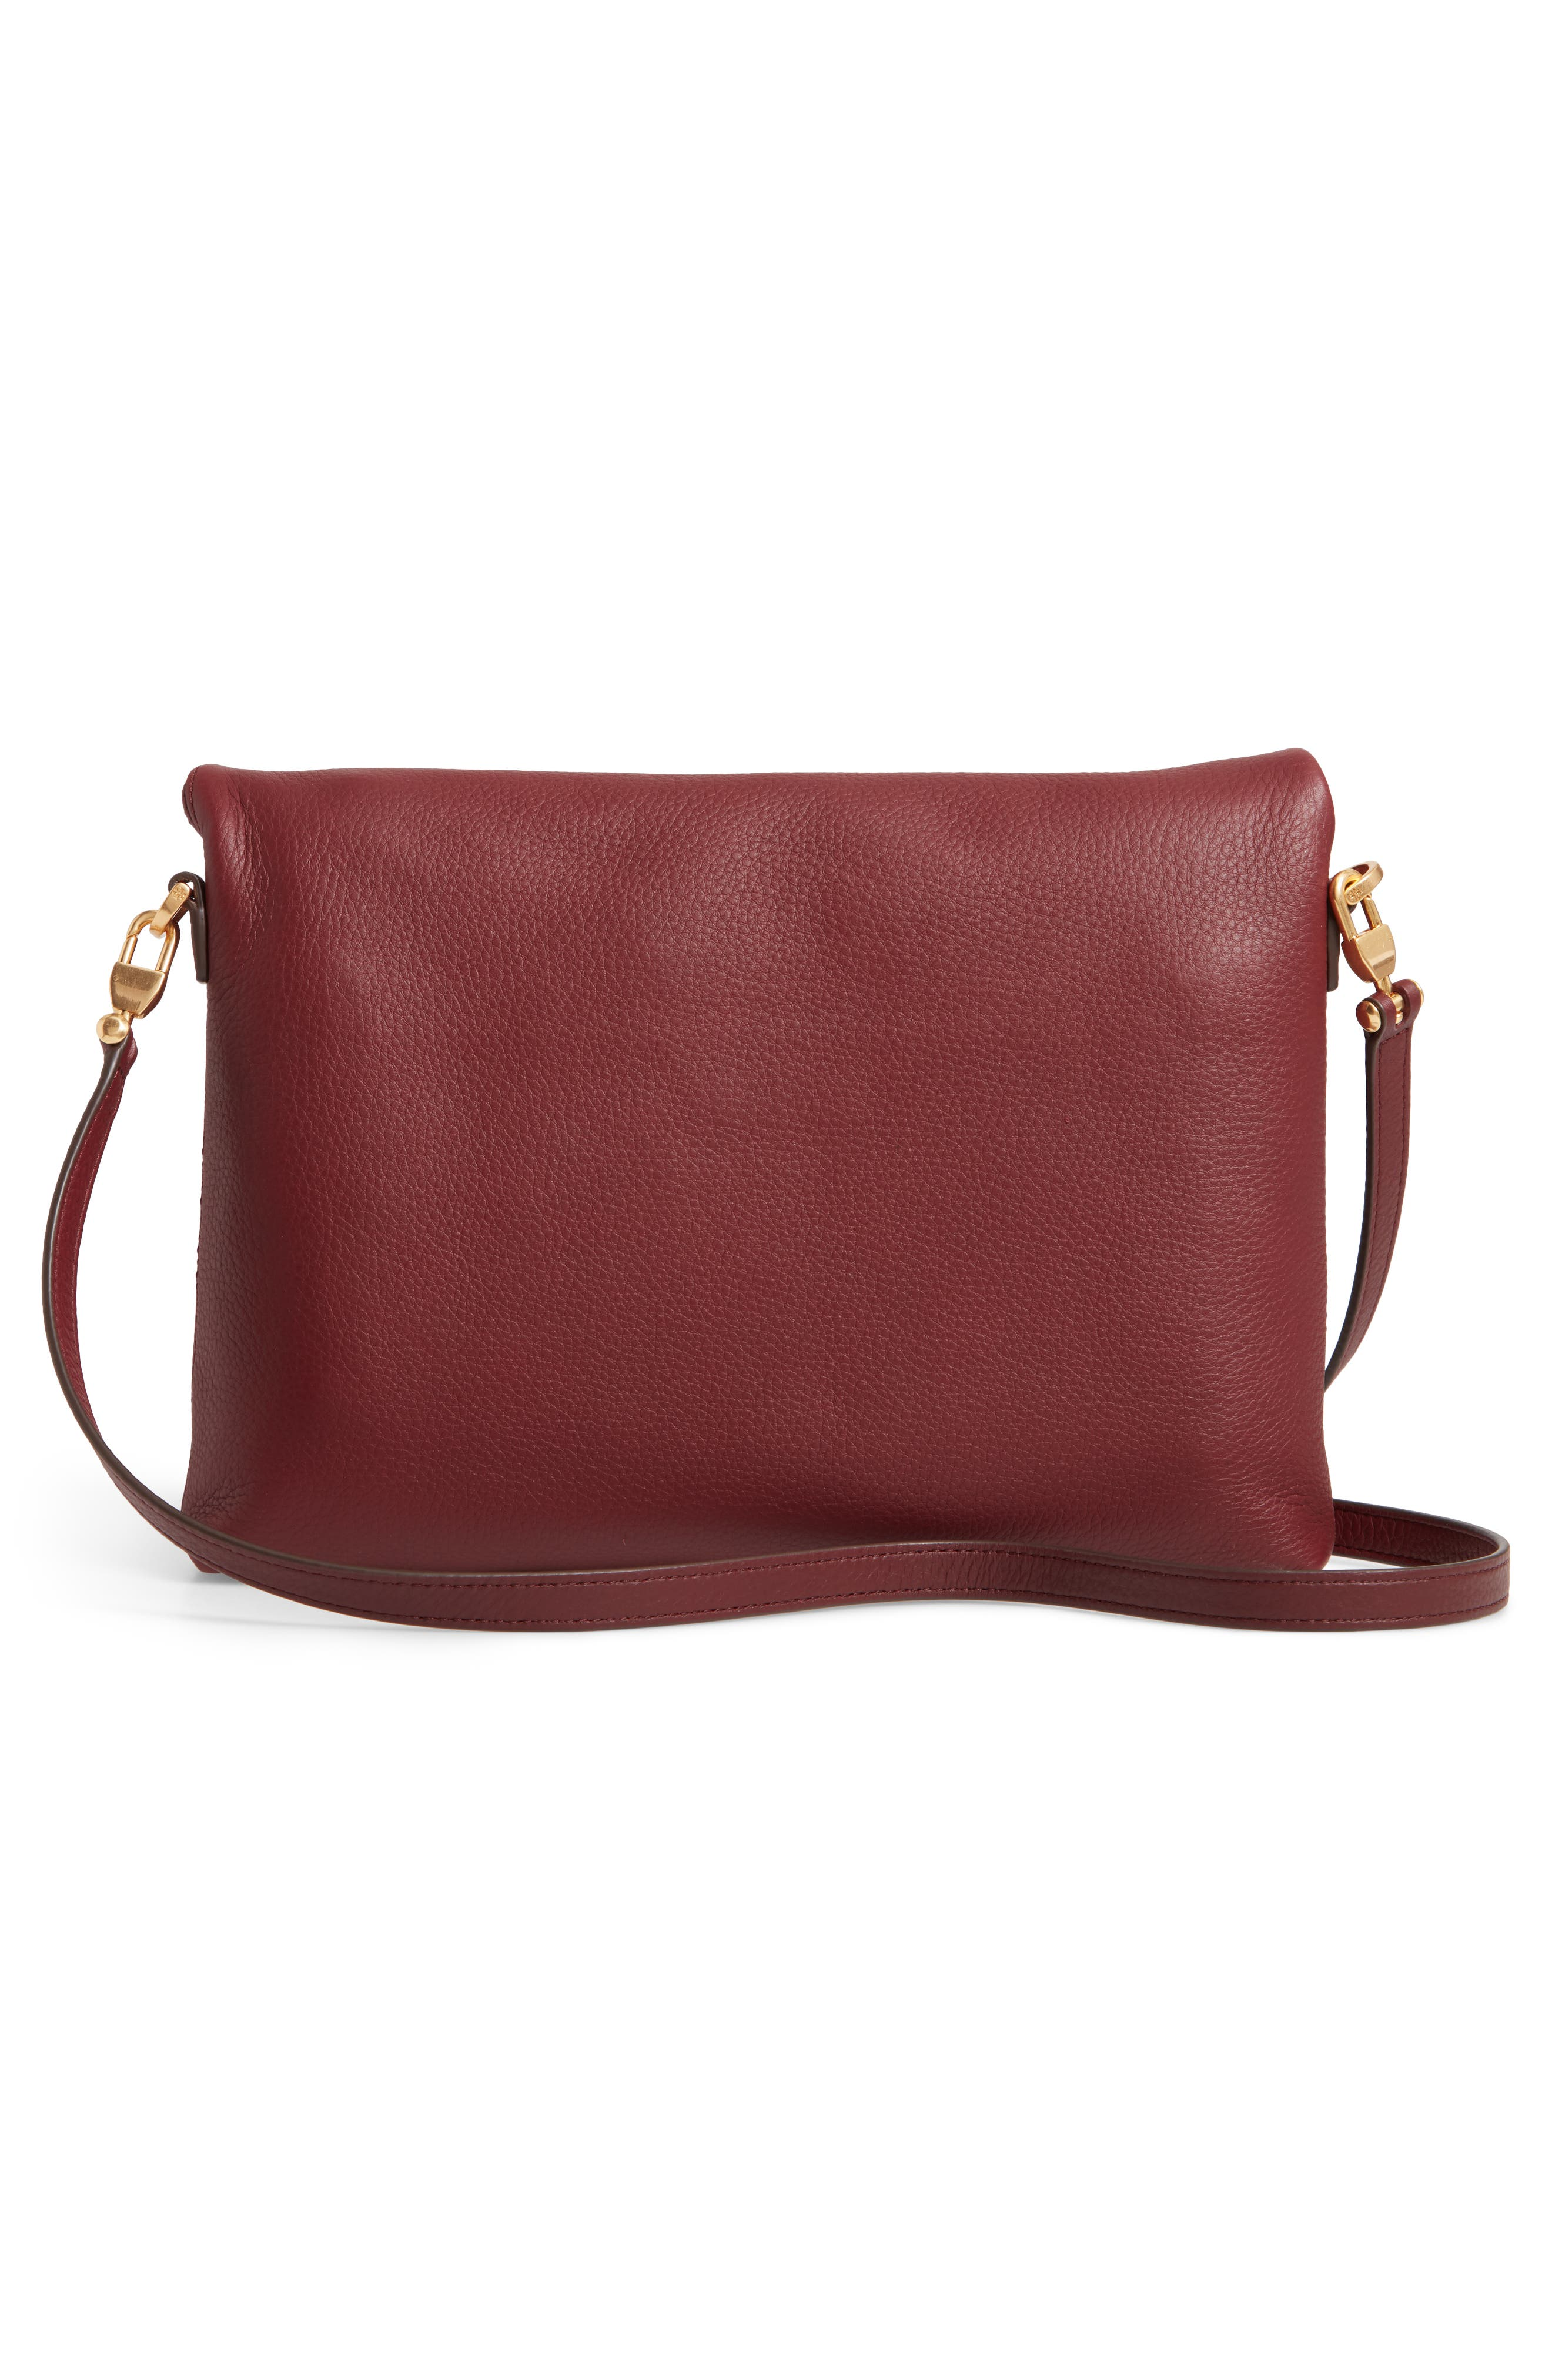 Half Moon Convertible Crossbody Bag,                             Alternate thumbnail 4, color,                             CLARET